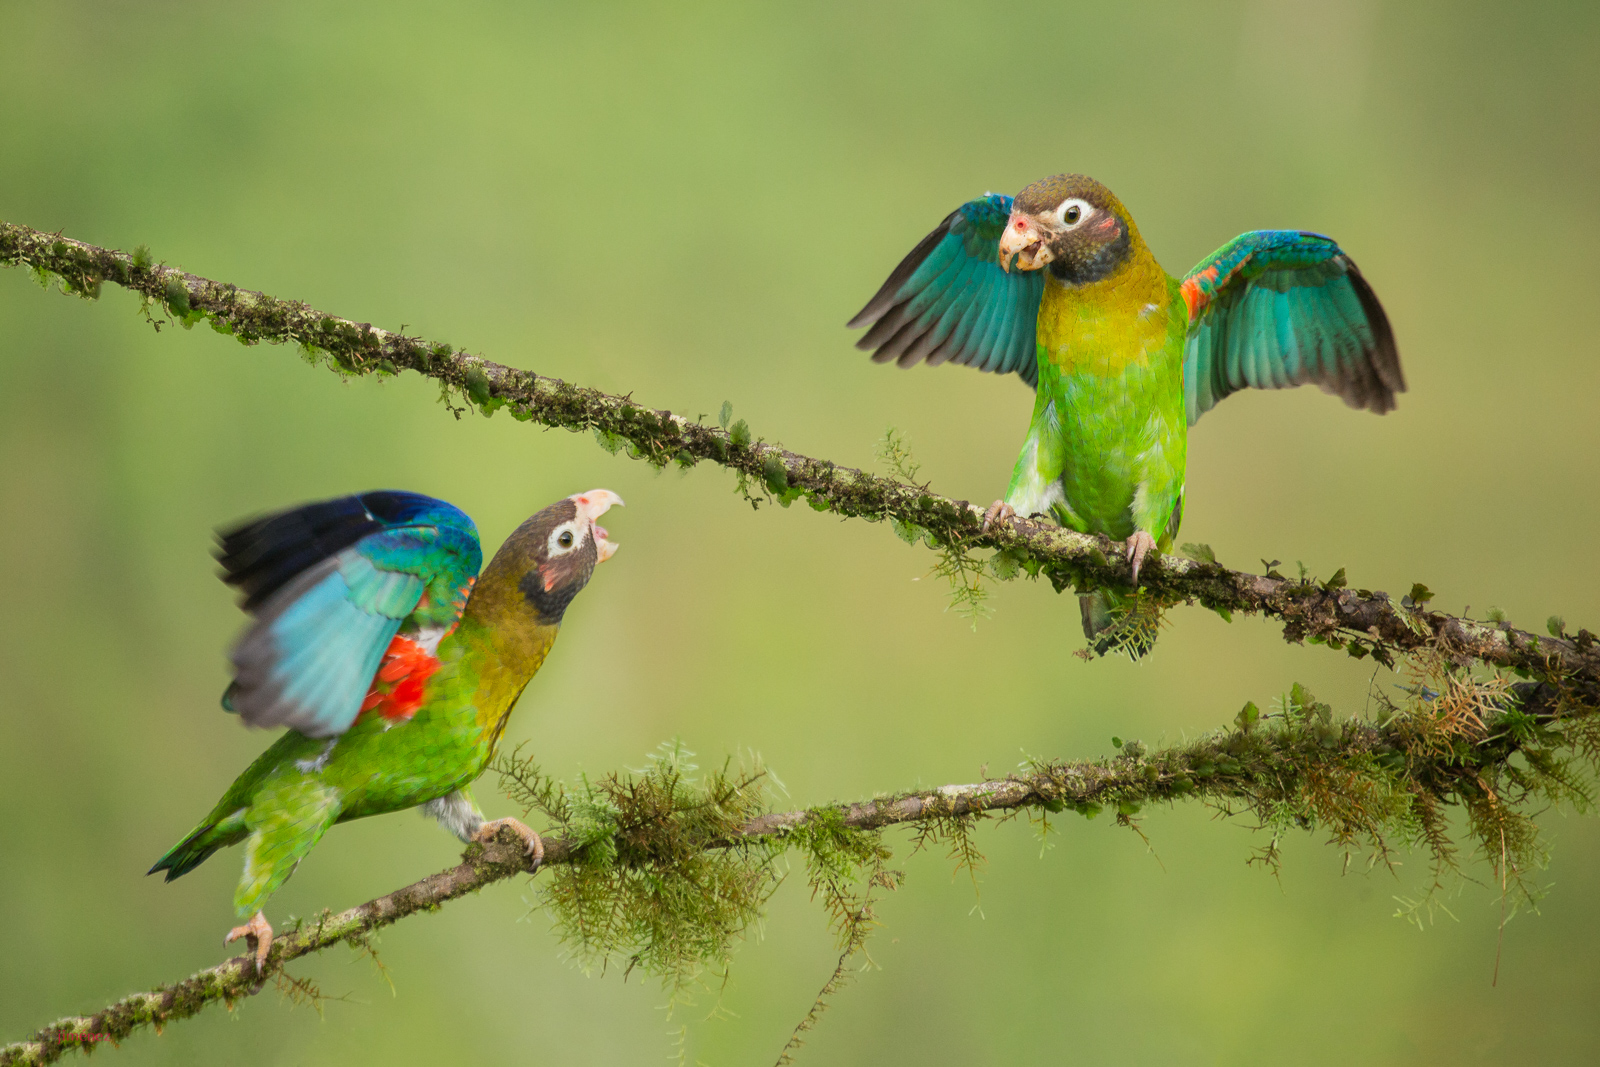 Brown-hooded Parrot (Pyrilia haematotis) pair perched on a branch at the low lands of Costa Rica